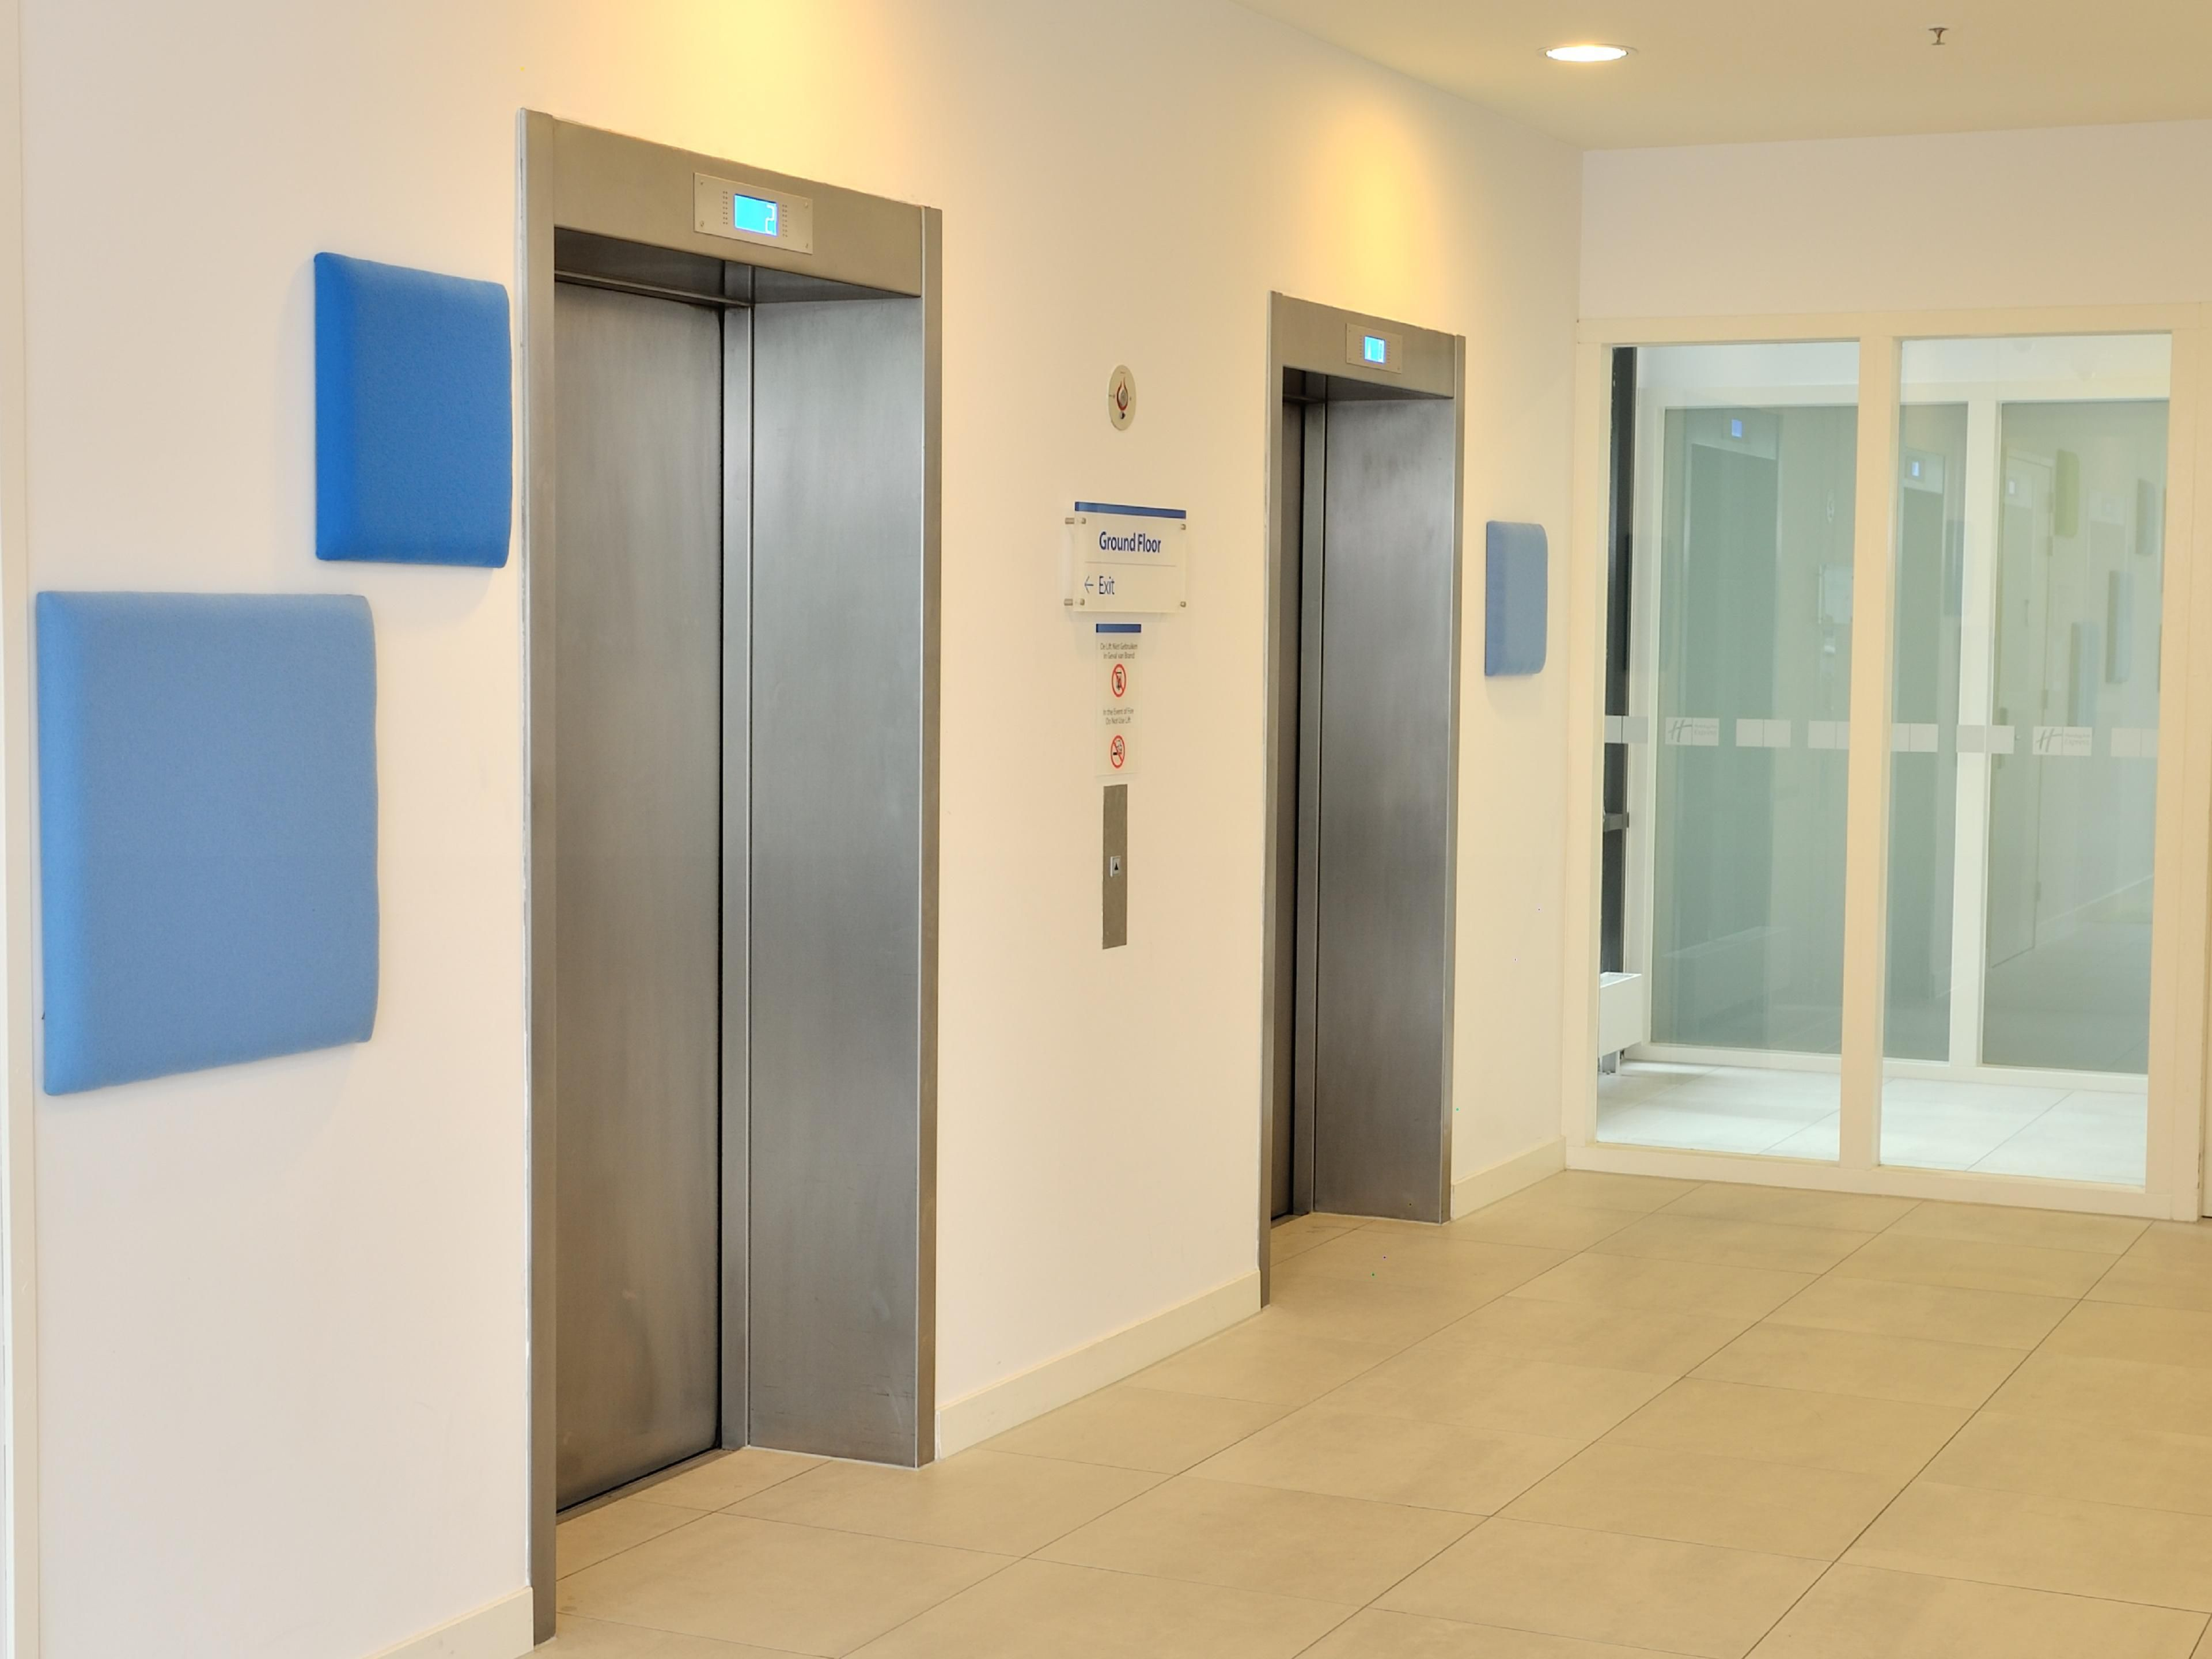 Elevators bring you to reception and Great Room at the 2nd floor.